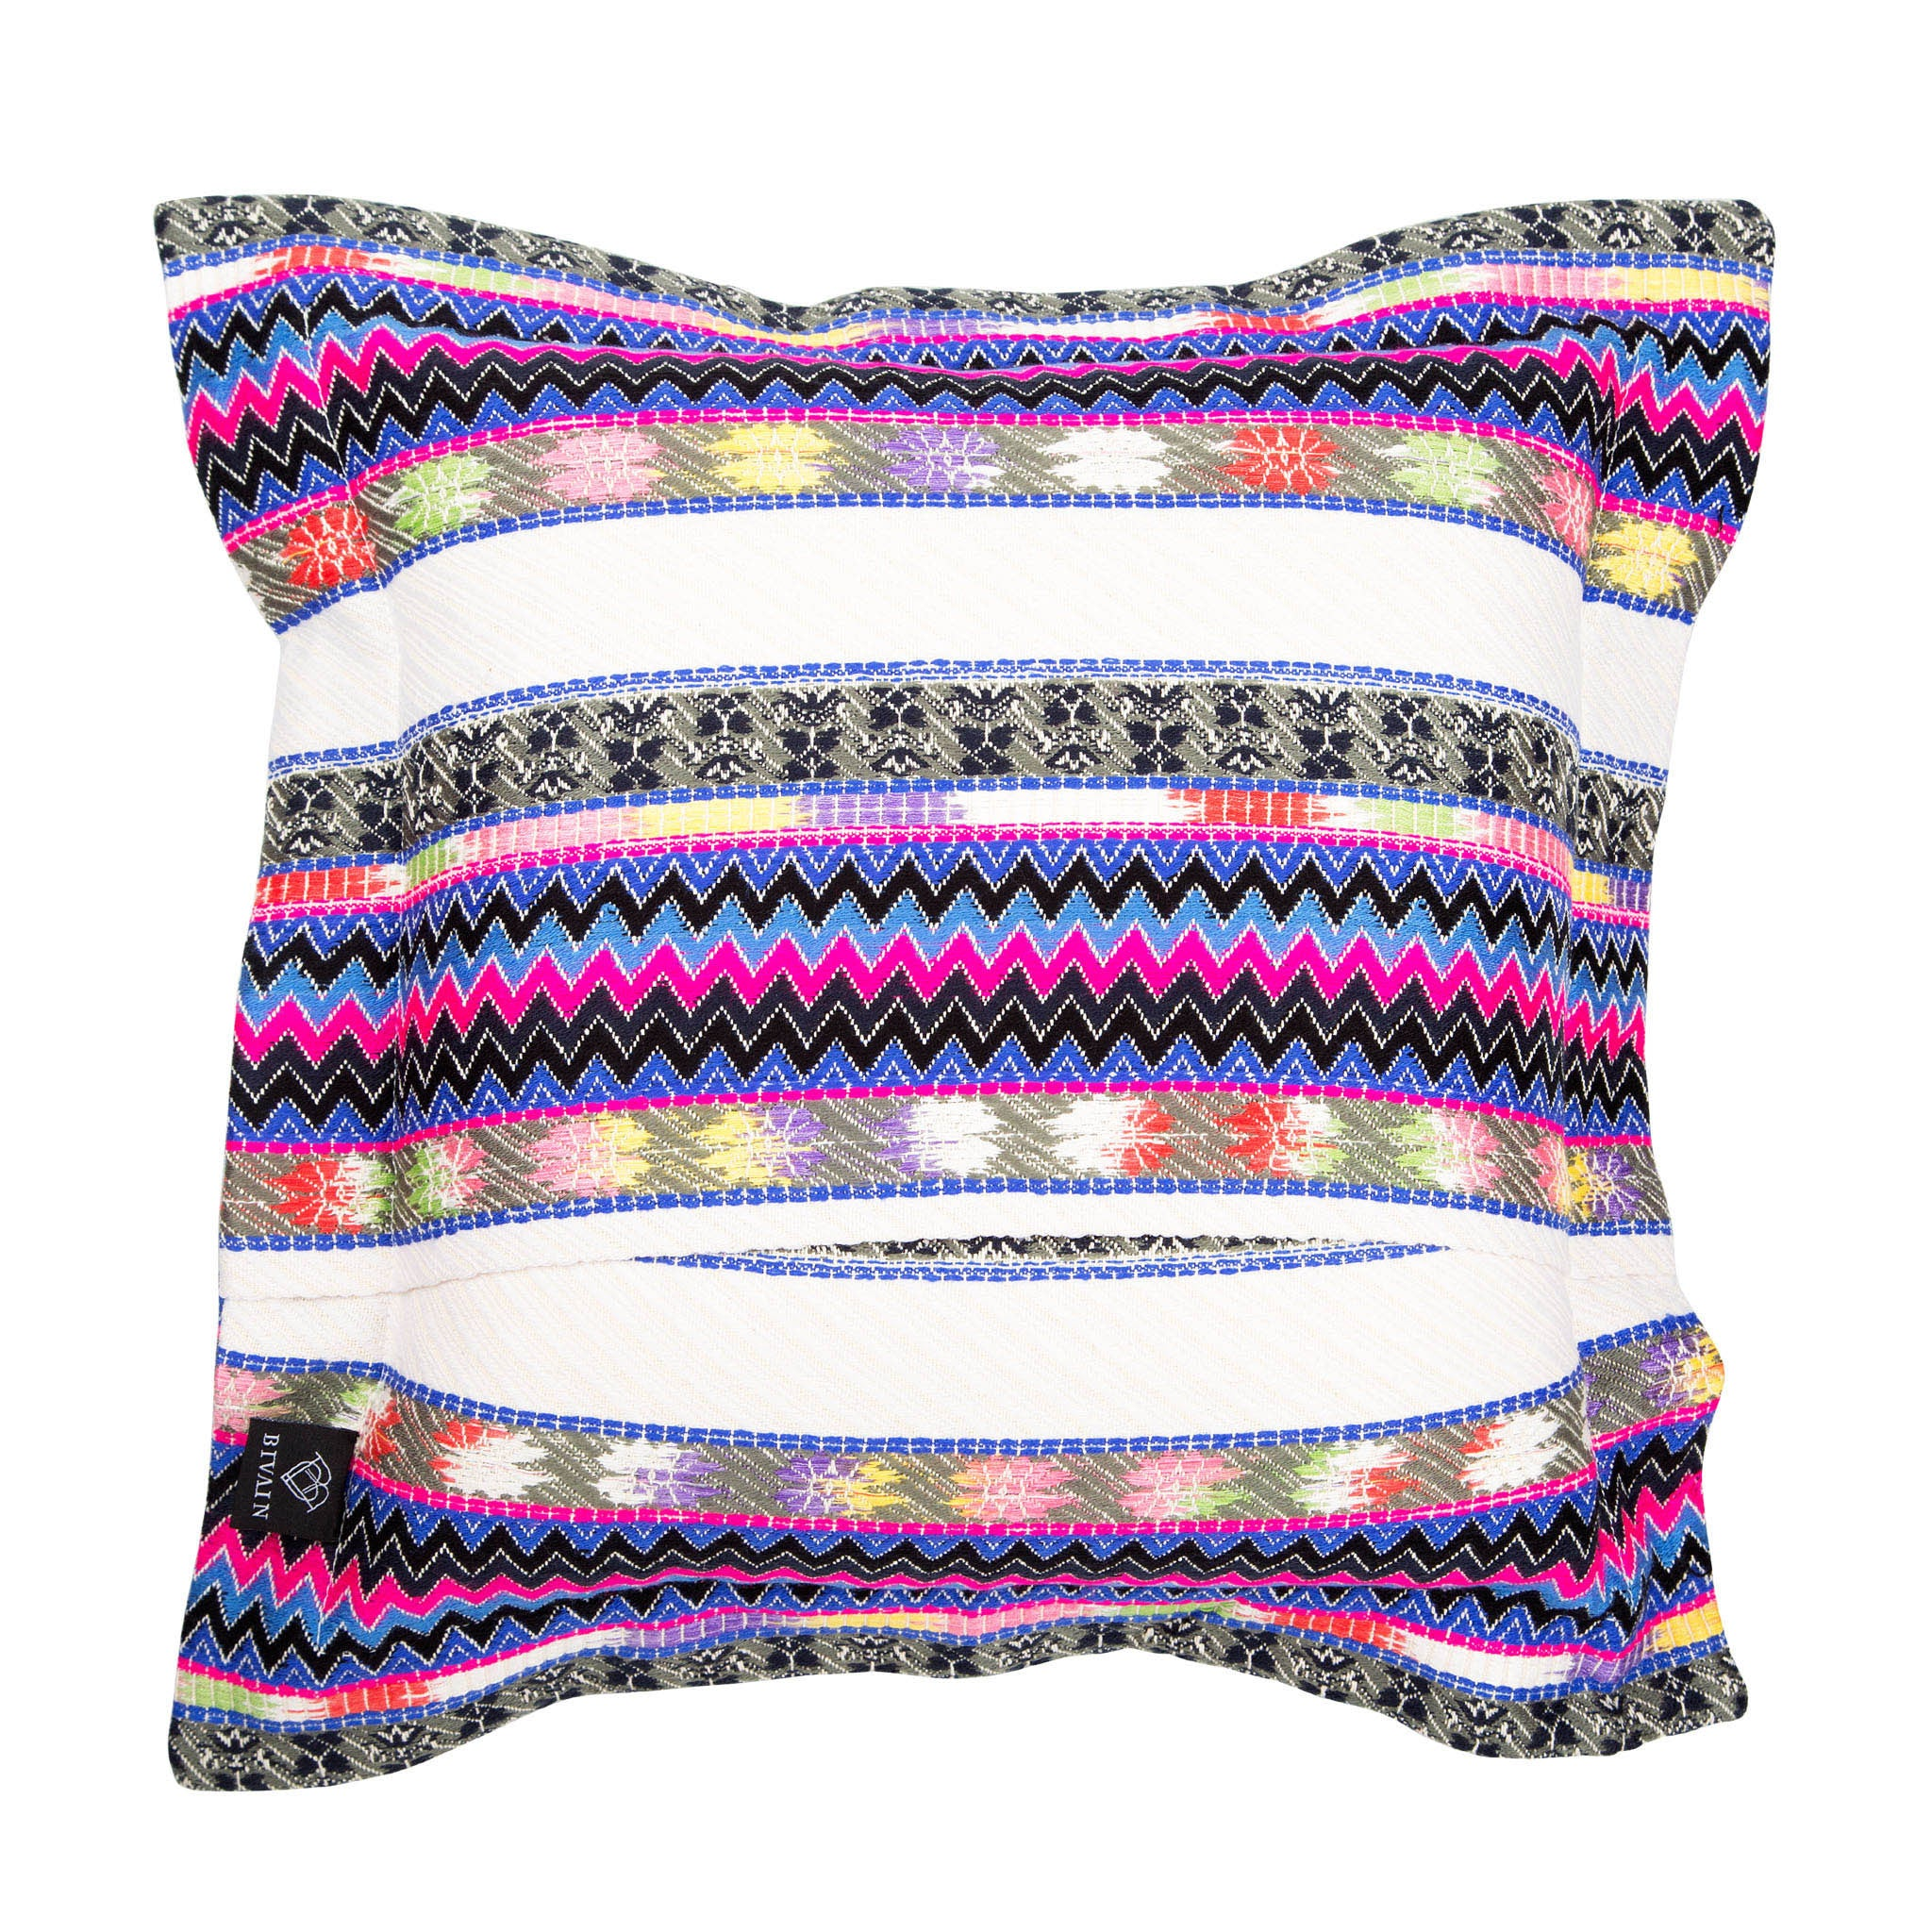 Bedouin-style cotton cushion with pink tassels - Bivain - 2